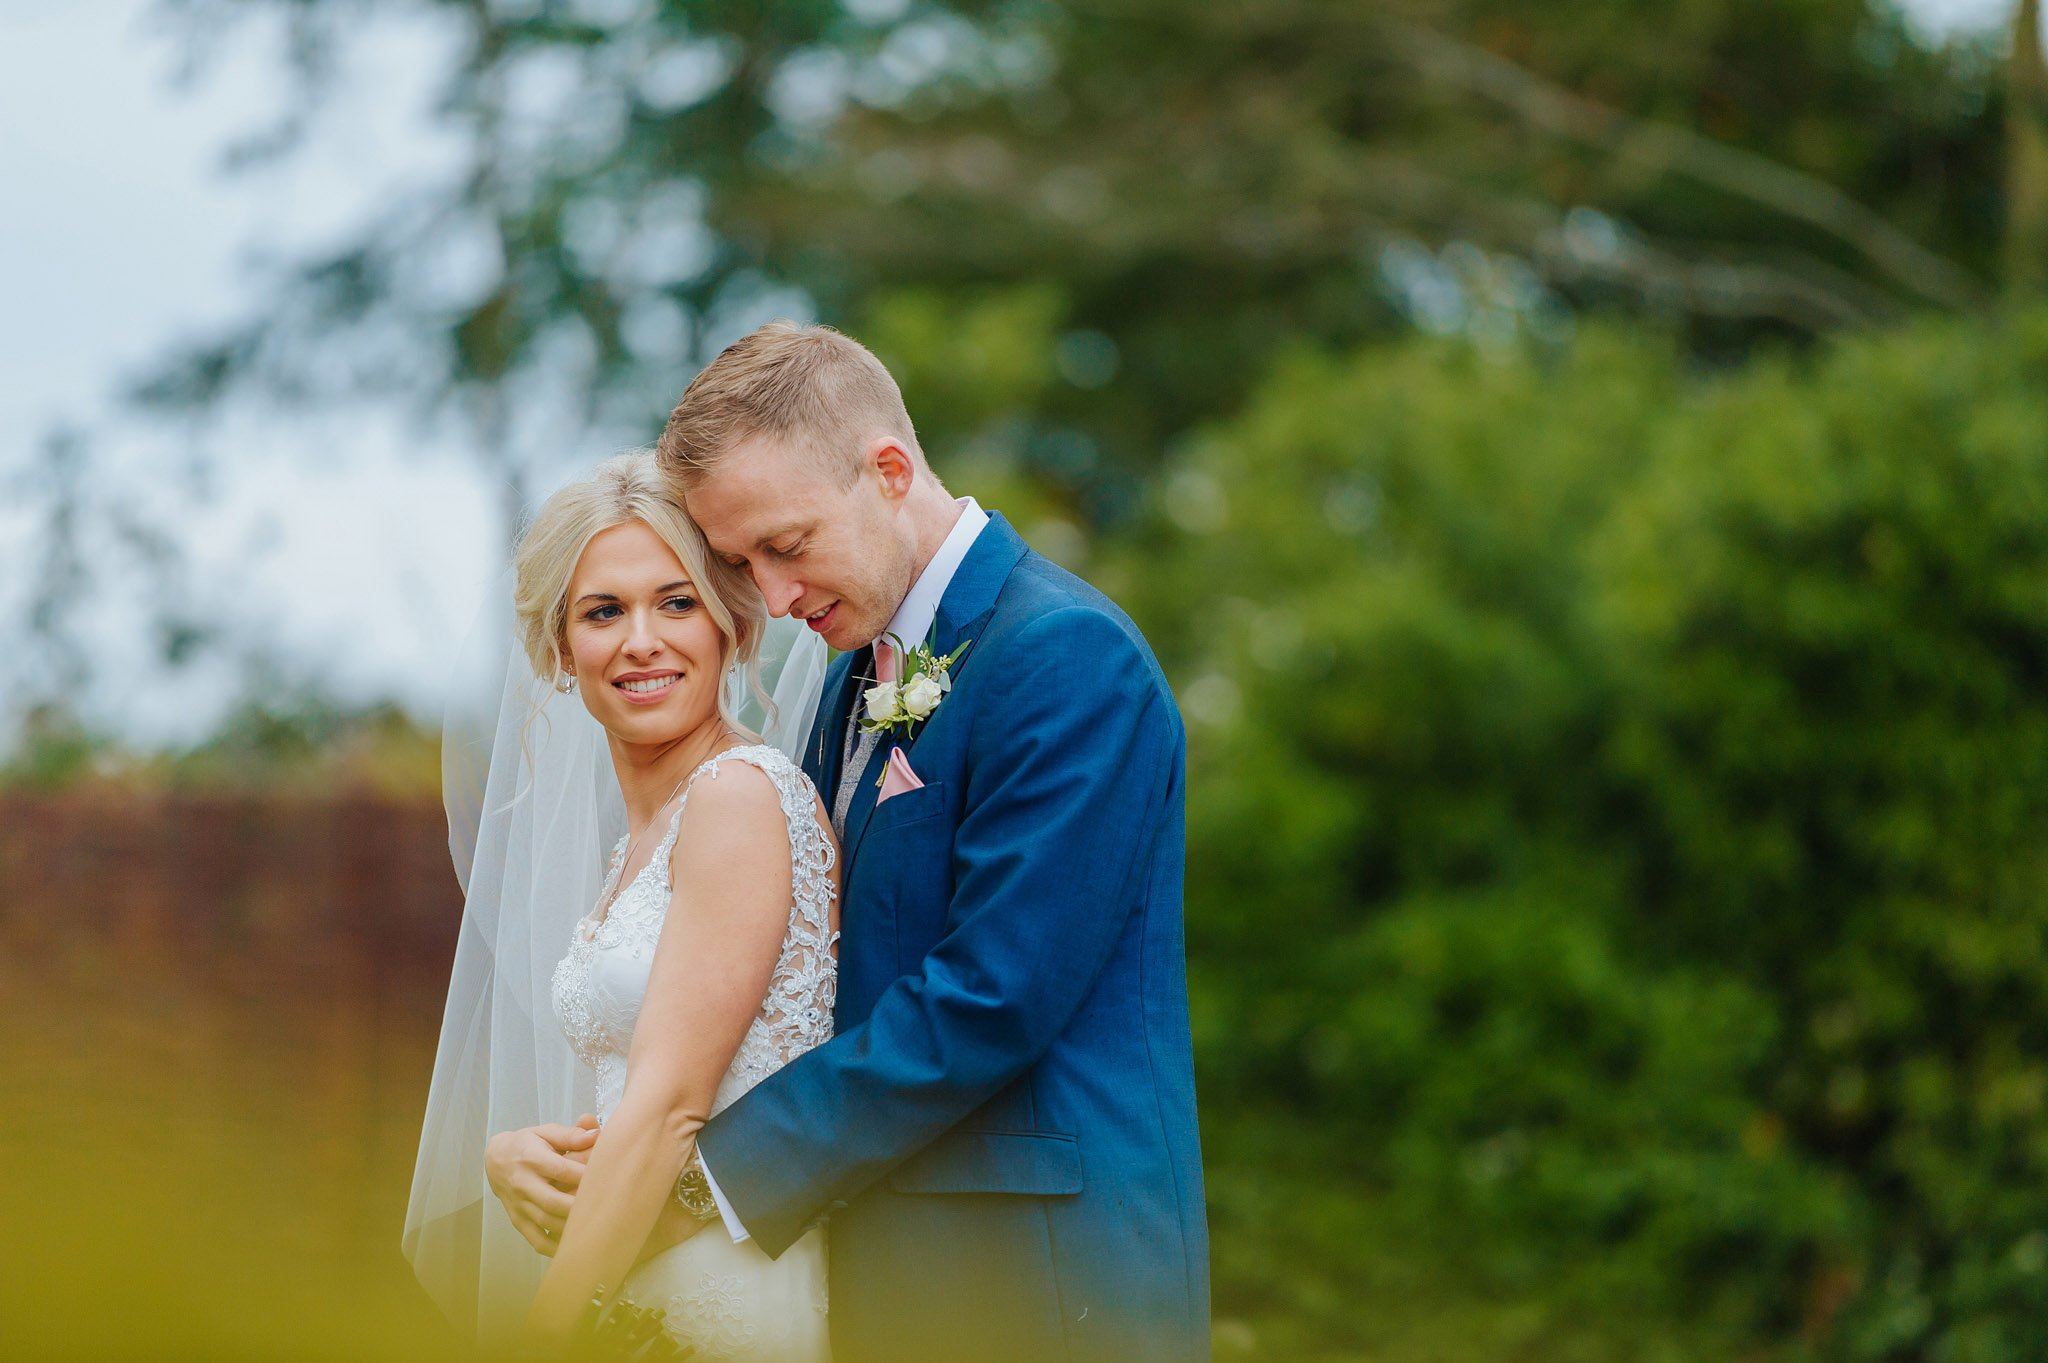 lemore manor wedding herefordshire 101 - Lemore Manor wedding, Herefordshire - West Midlands | Sadie + Ken